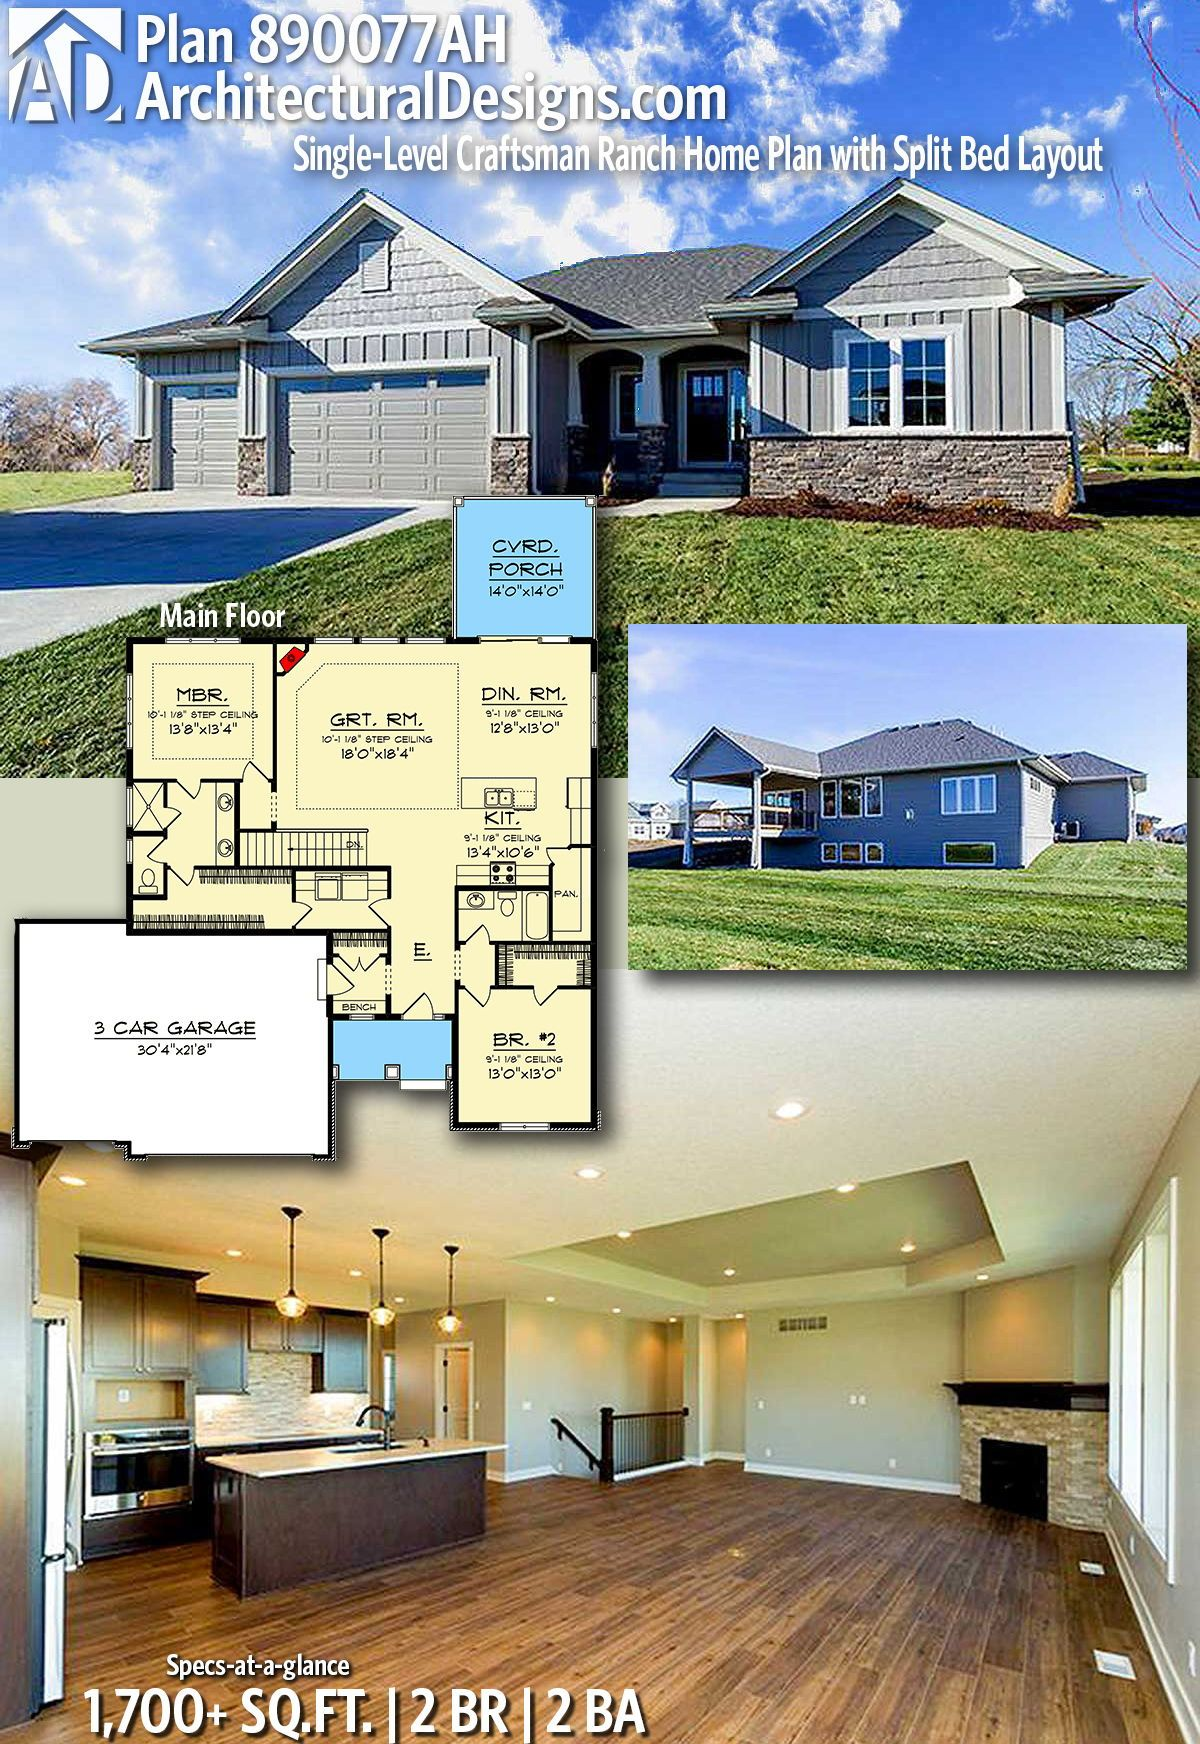 Plan 890077ah Single Level Craftsman Ranch Home Plan With Split Bed Layout Ranch House Plans House Plans Craftsman House Plans